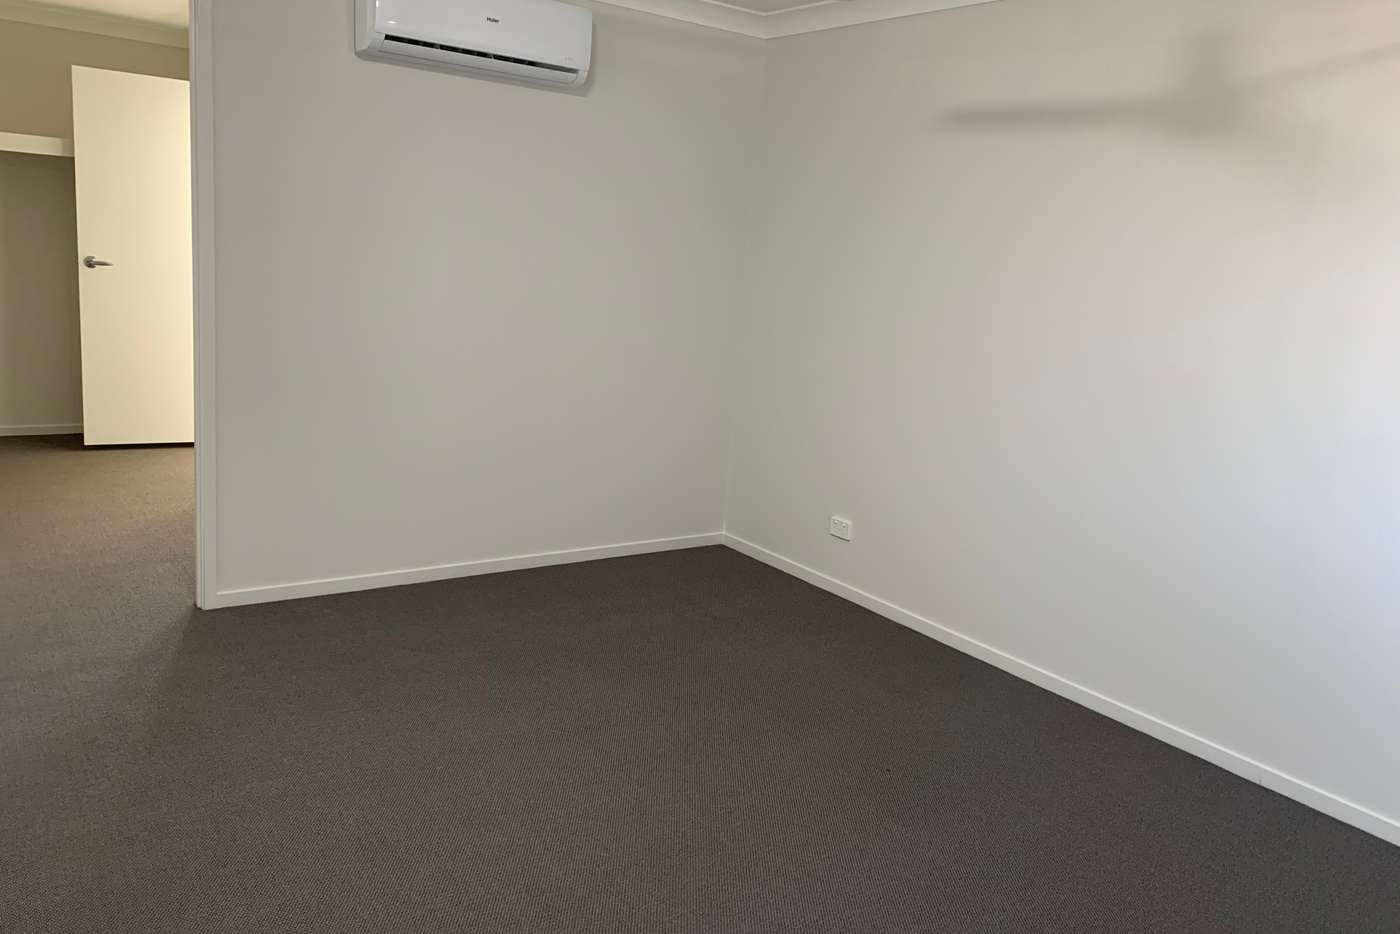 Seventh view of Homely townhouse listing, 02 Kerr Road West, Kallangur QLD 4503